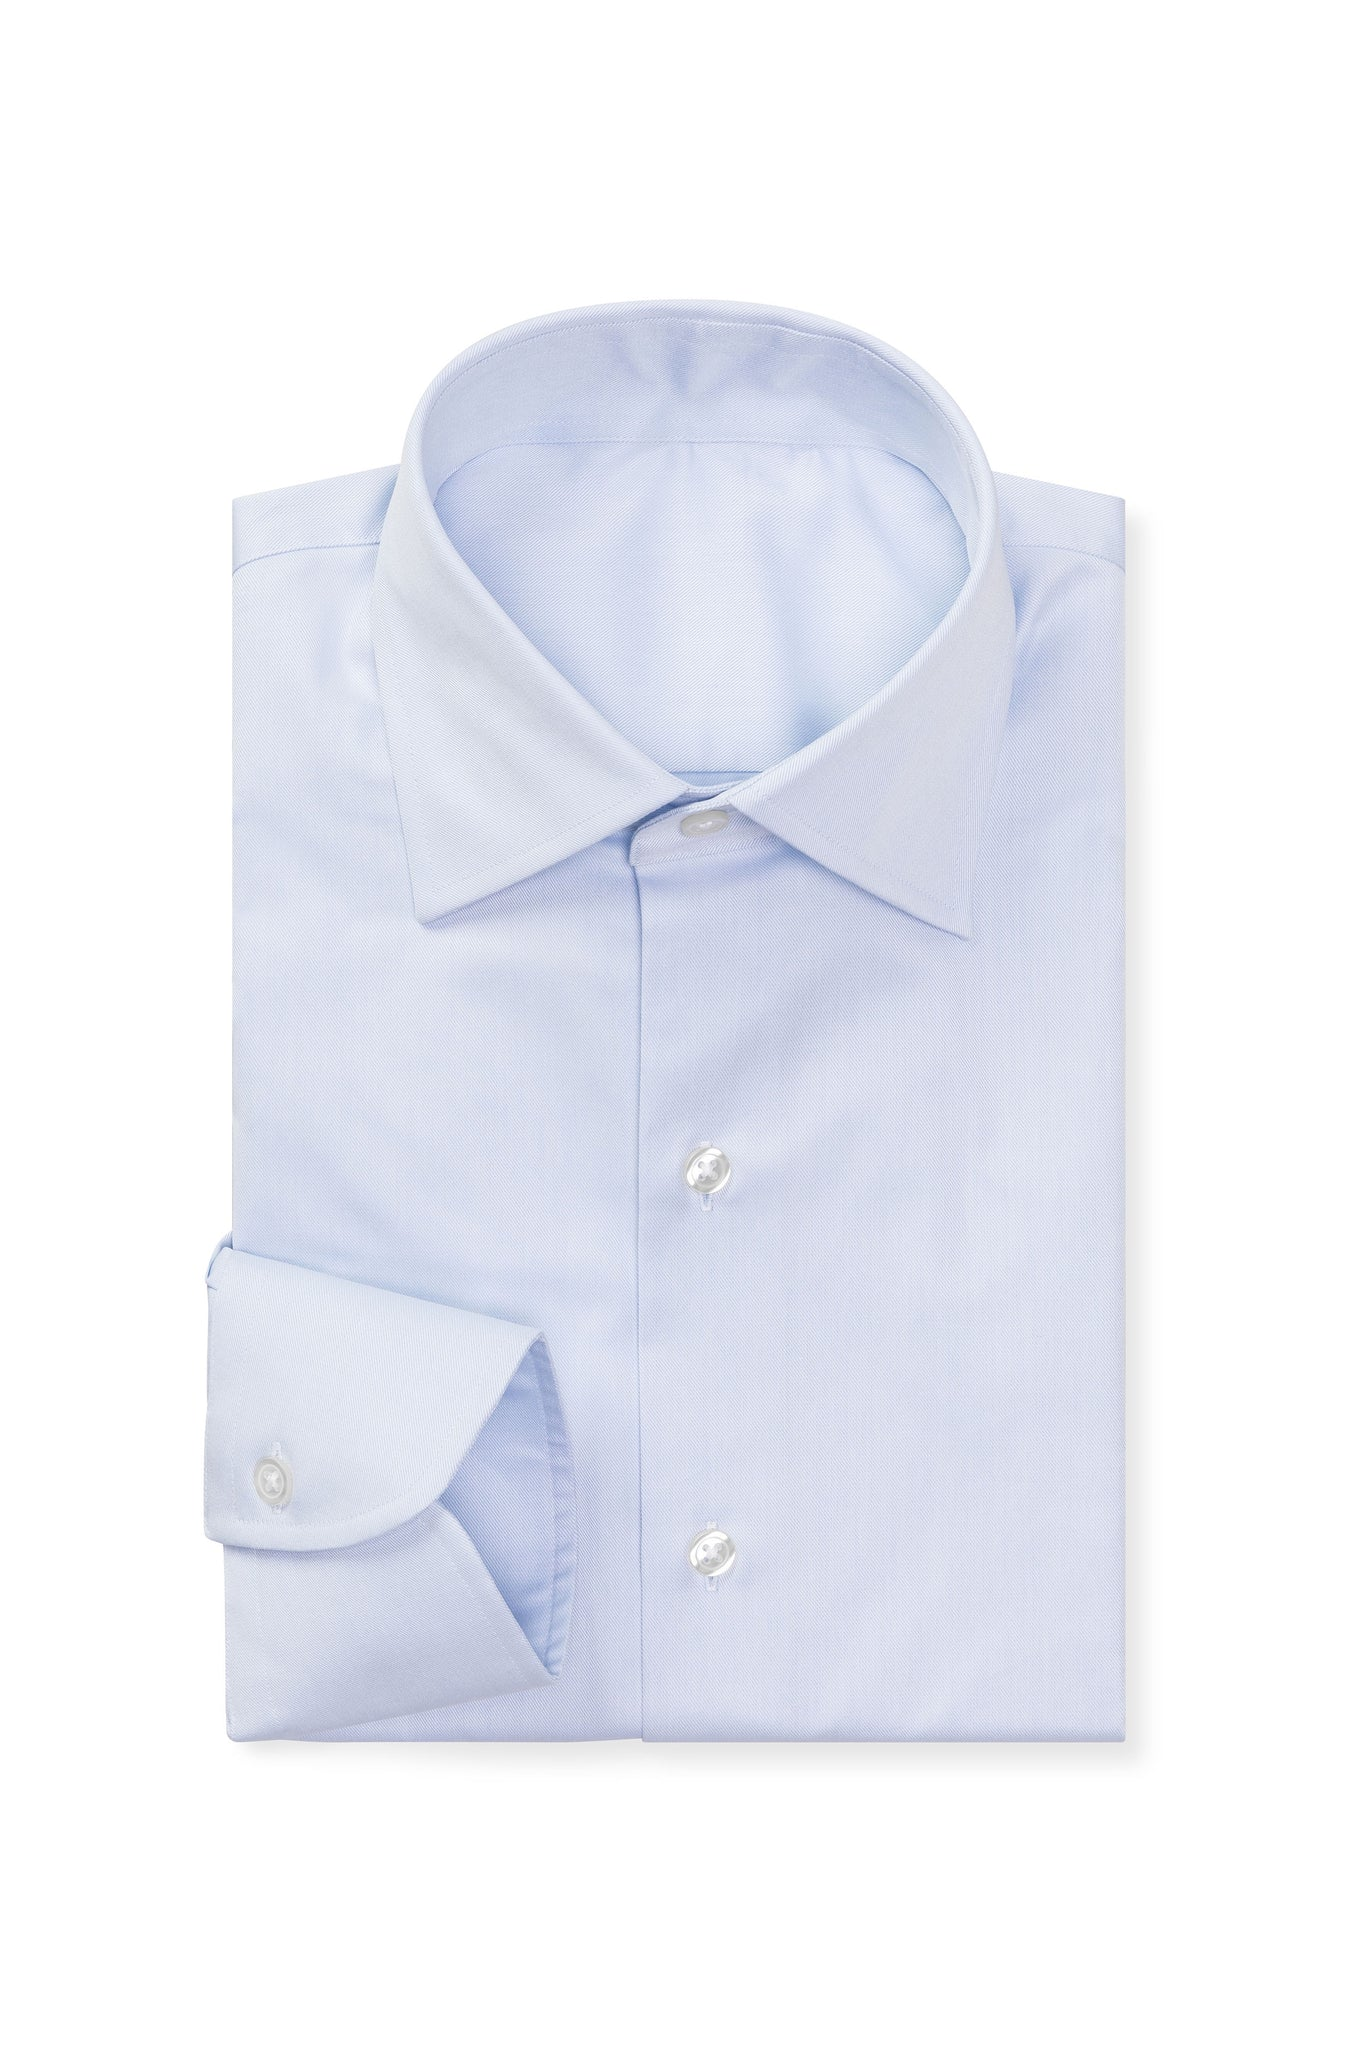 Classic Ice Blue Twill Made to Order Shirt